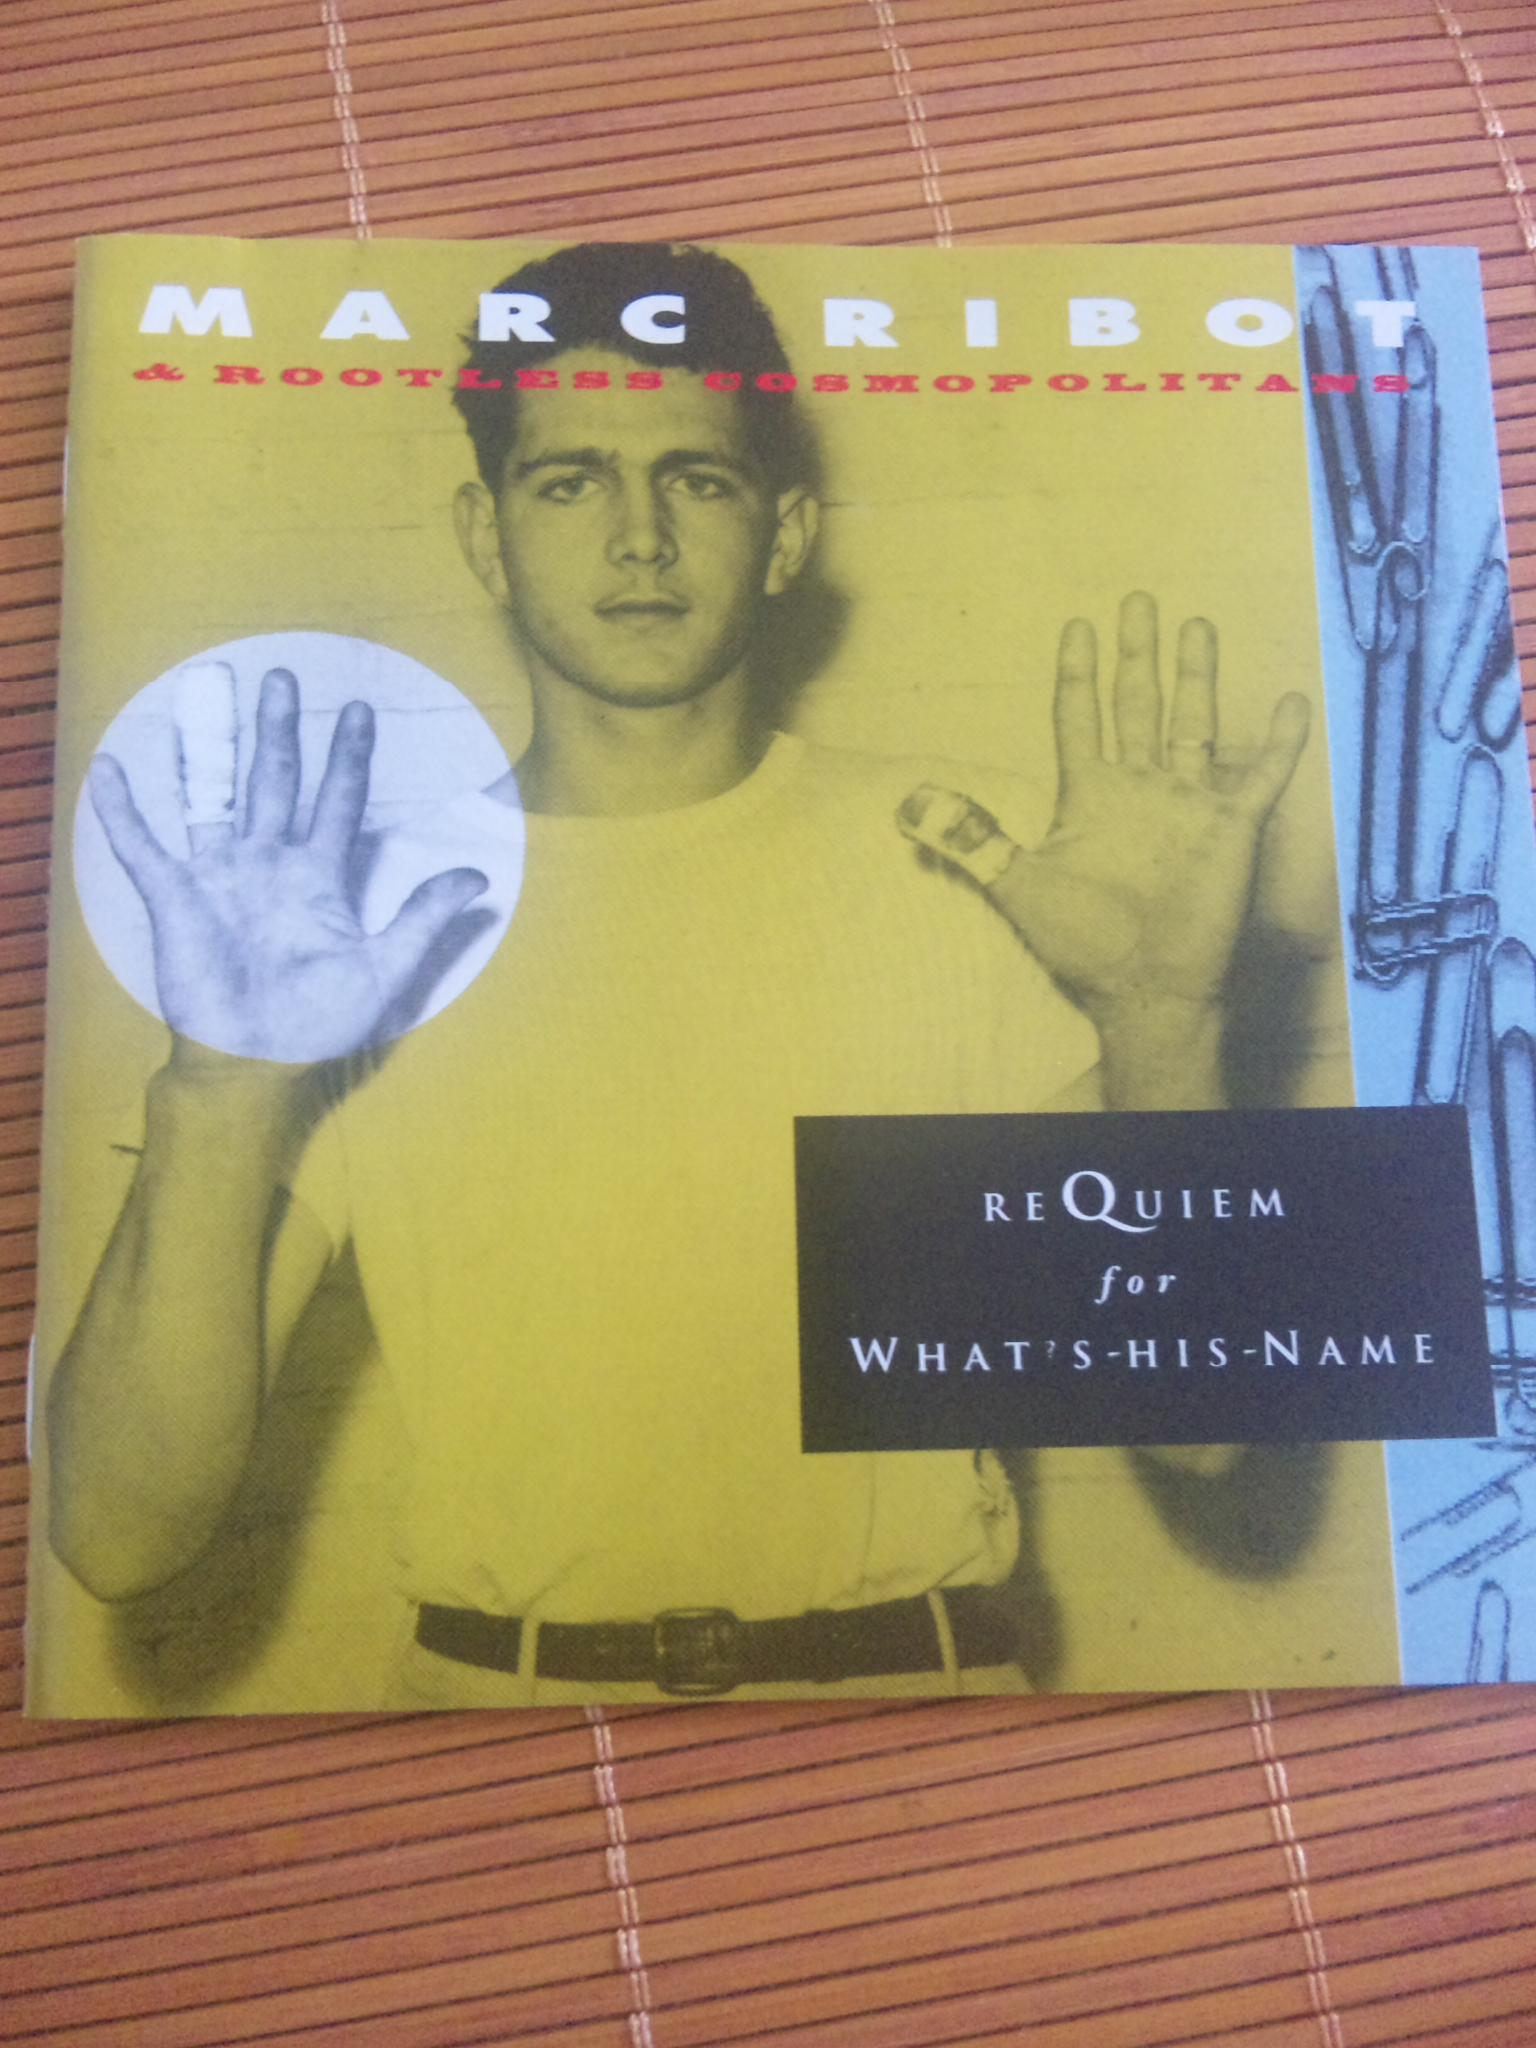 MARC RIBOT;REQUIEM FOR WHAT'S HIS NAME